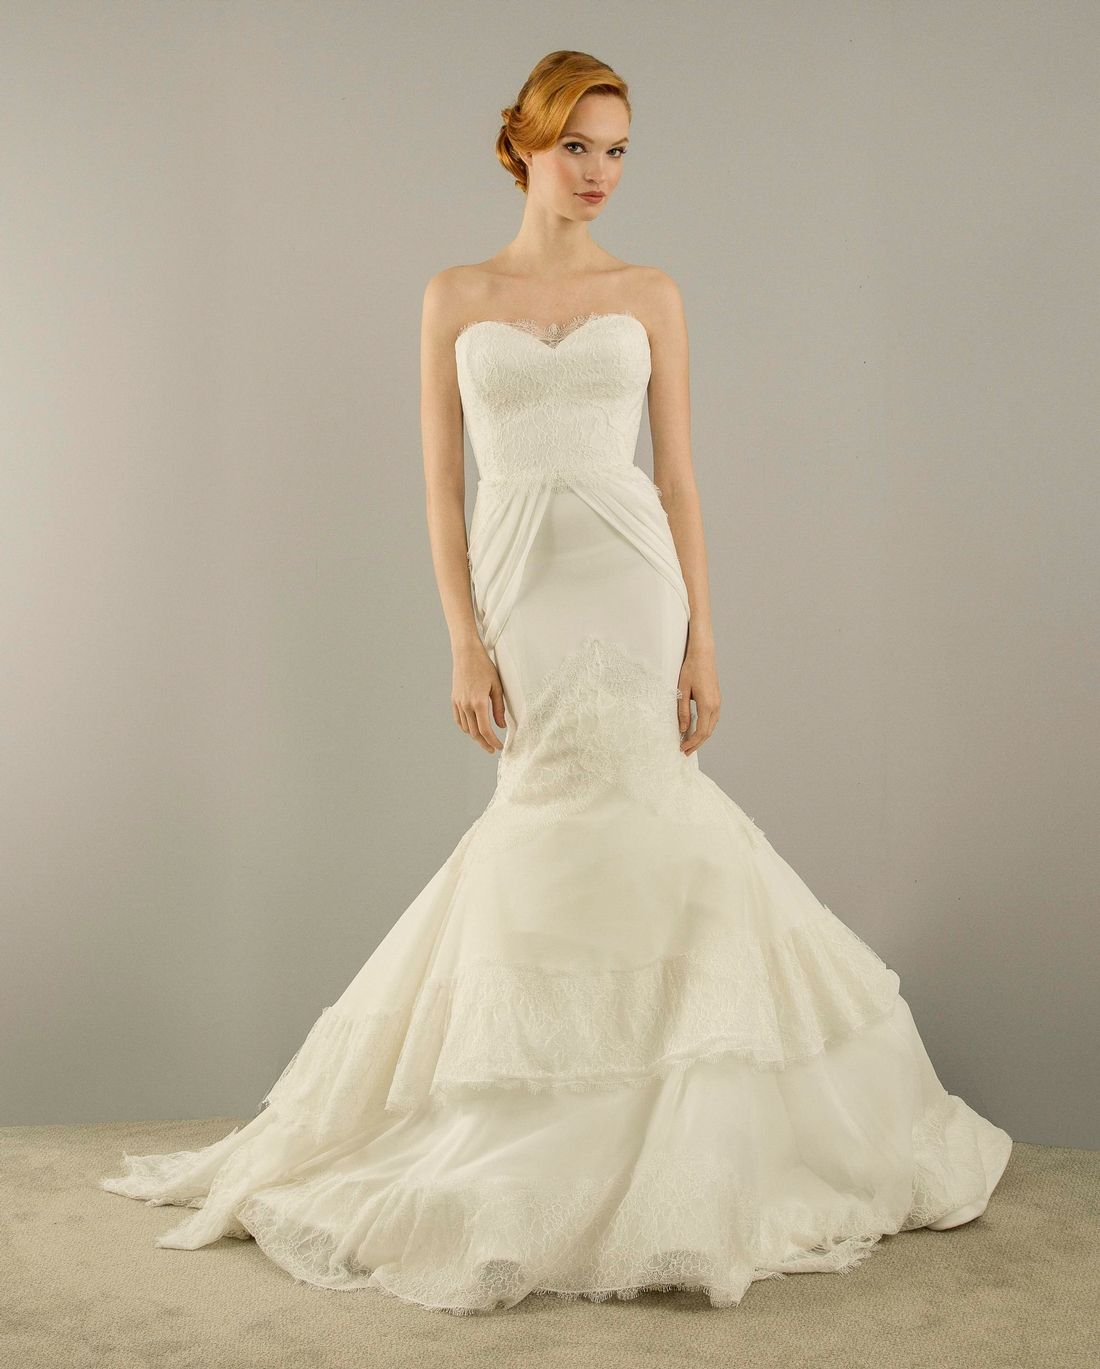 Wedding gown with red accents  KleinfeldBridal Christian Siriano Bridal Gown